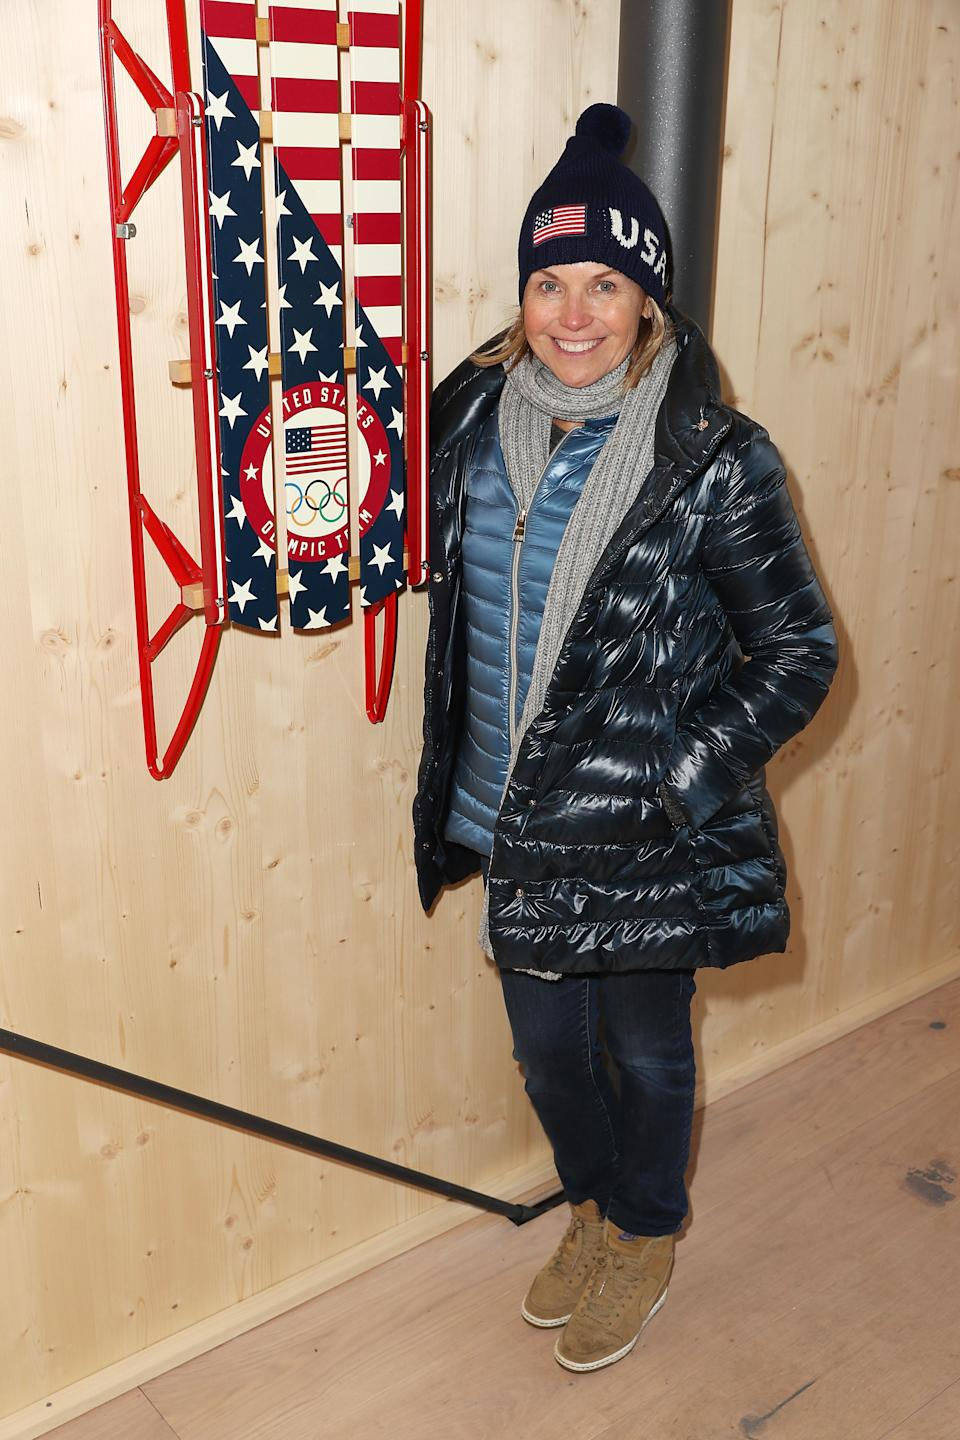 PYEONGCHANG-GUN, SOUTH KOREA – FEBRUARY 10: Katie Couric poses for a photo at the USA House at the PyeongChang 2018 Winter Olympic Games. (Getty Images)